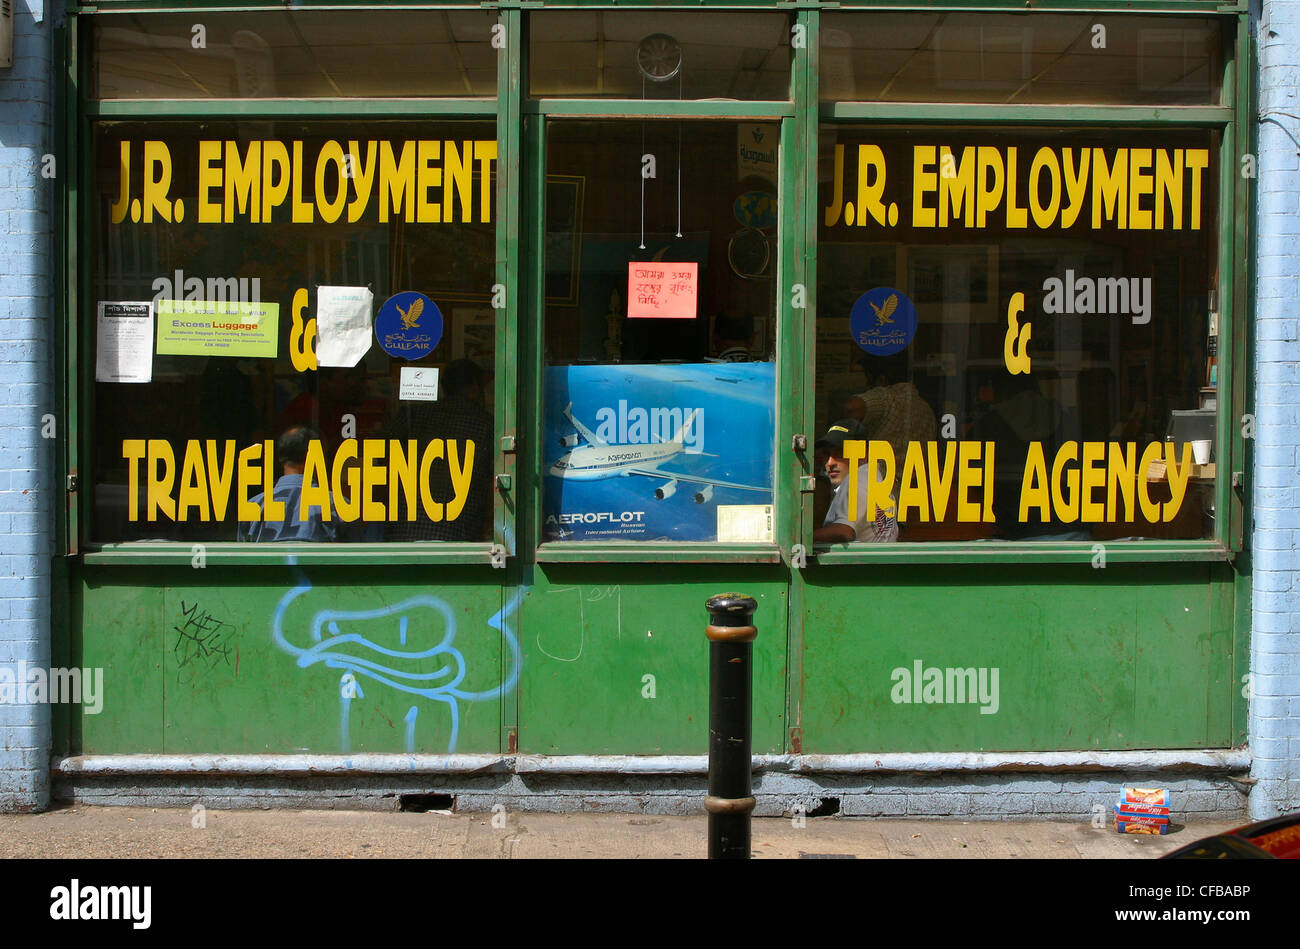 Windows of a disused, empty employment and travel agency, with poster of airplane in the doorway - Stock Image